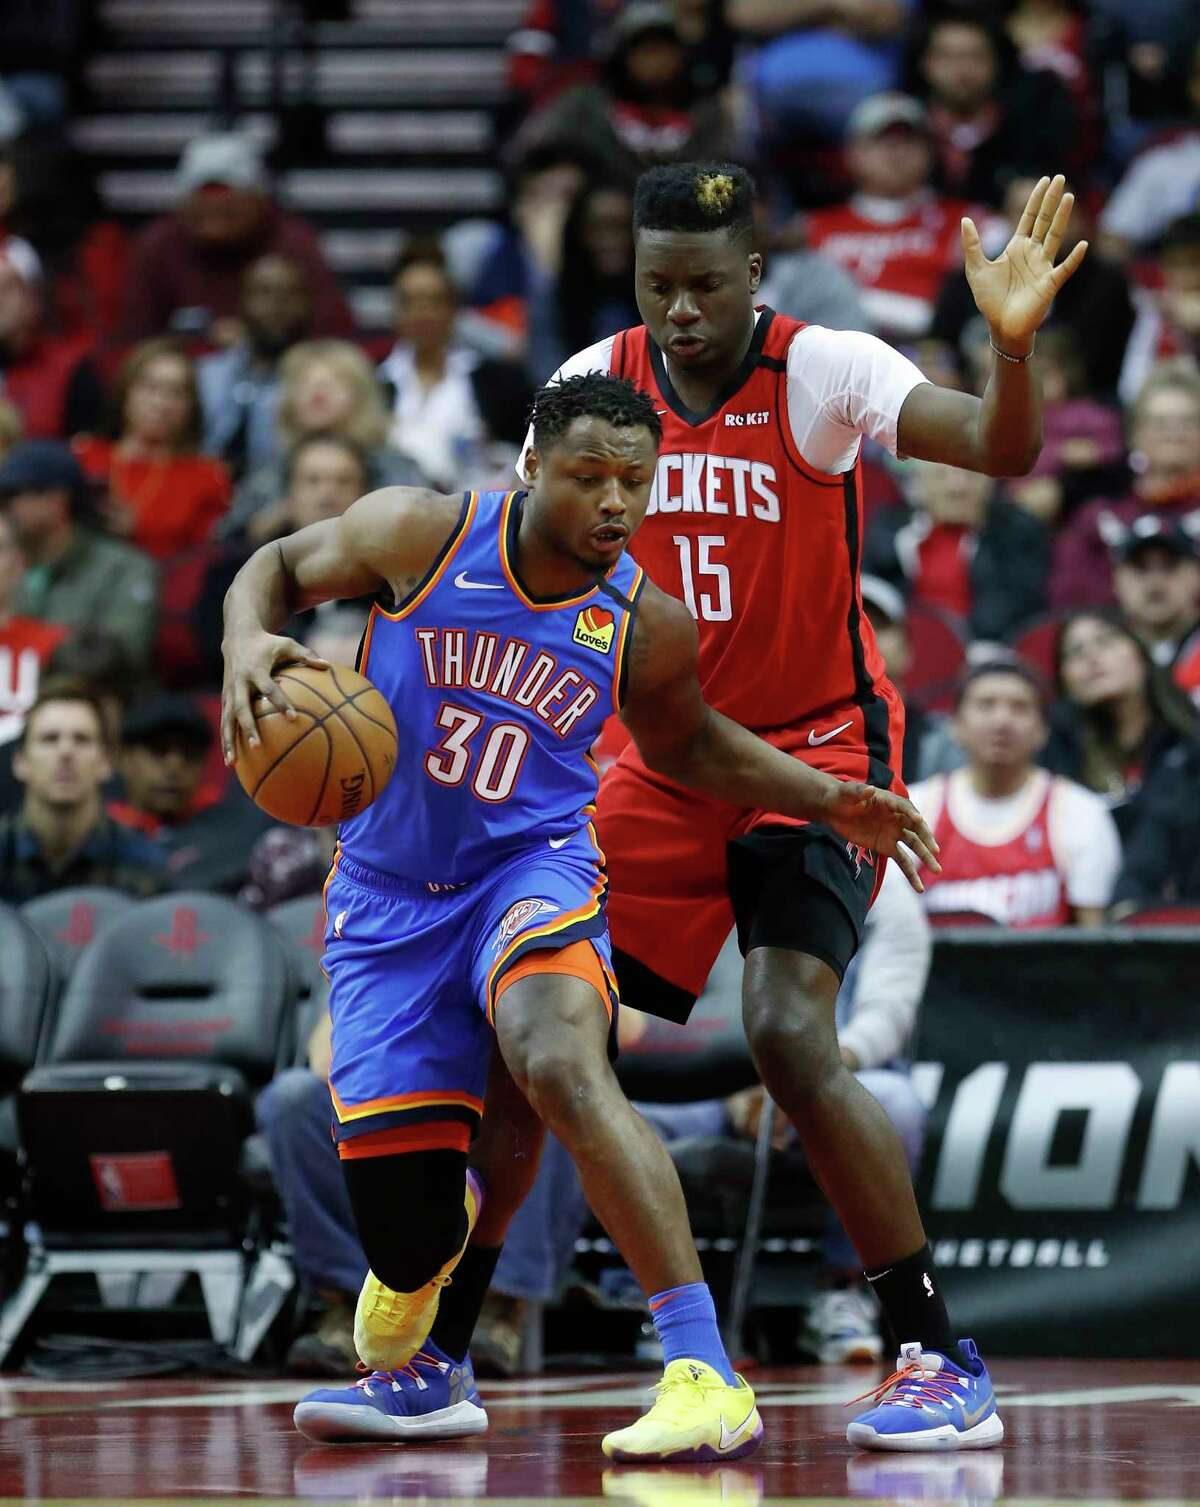 Houston Rockets center Clint Capela (15) tries to defend the goal against Oklahoma City Thunder guard Deonte Burton (30) during the first half of an MBA basketball game at Toyota Center, in Houston, Monday, Jan. 20, 2020.